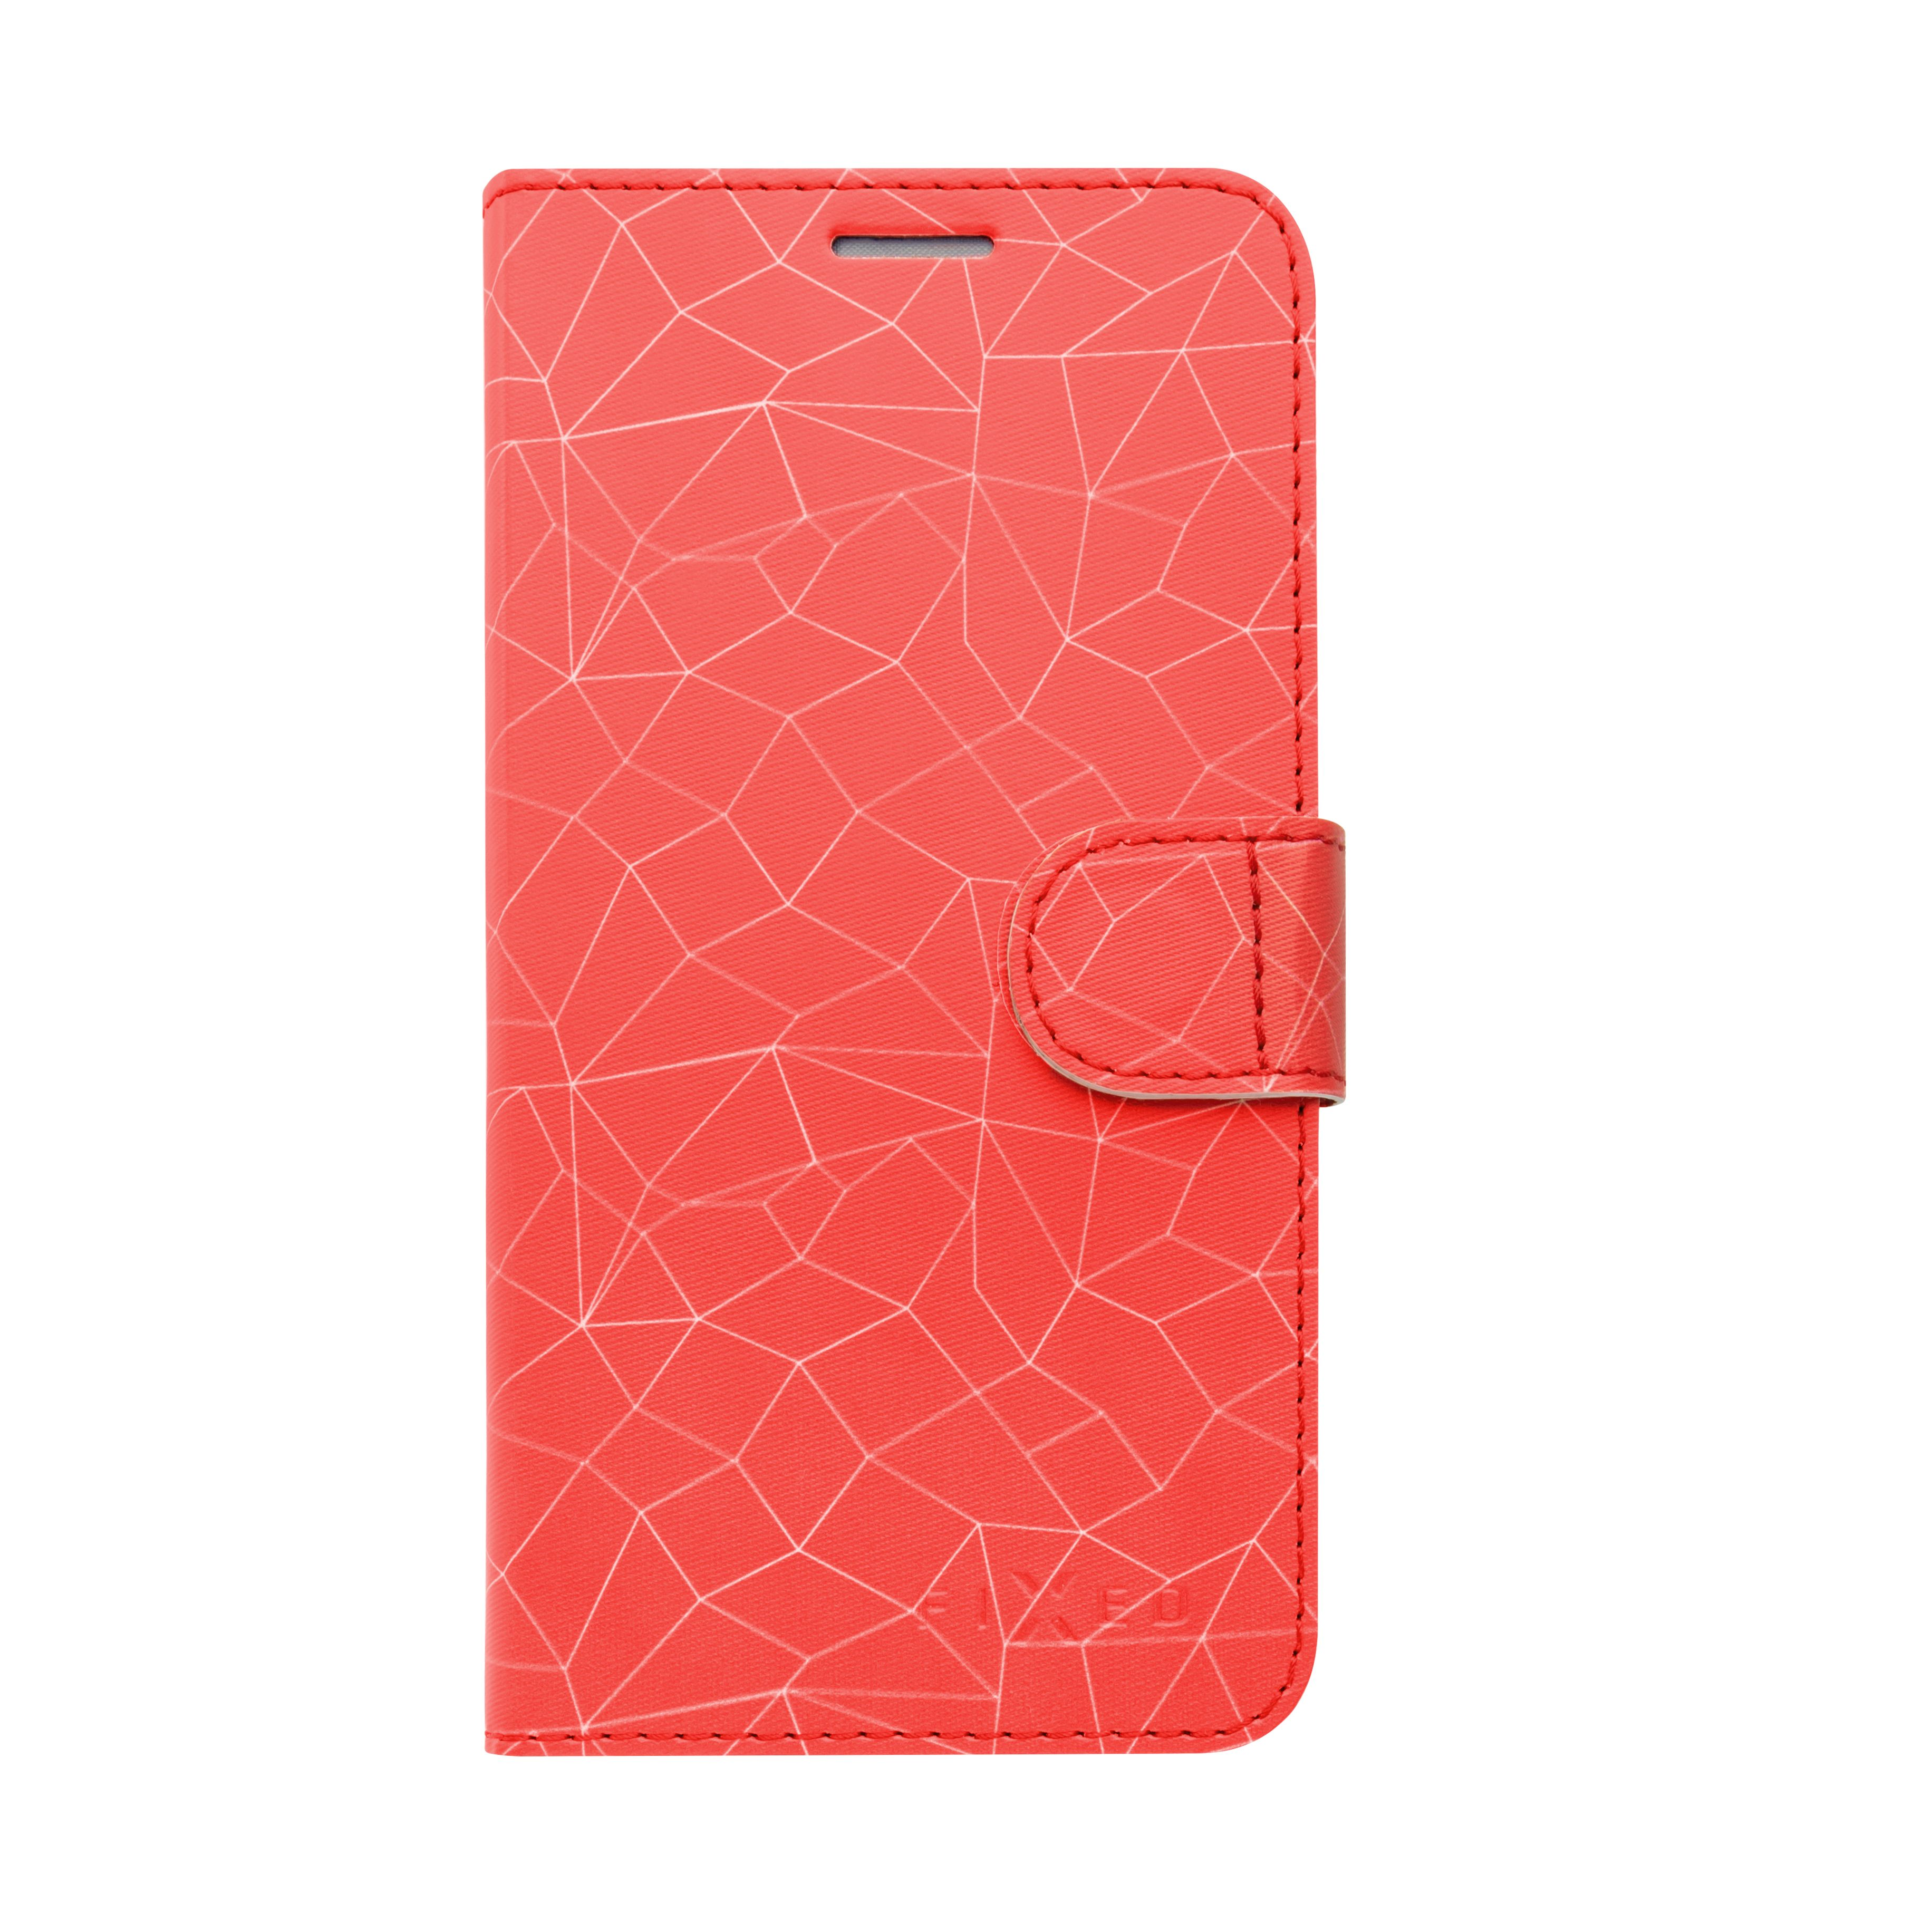 FIXED FIT flipové pouzdro pro Apple iPhone 5/5S/SE, motiv red mesh